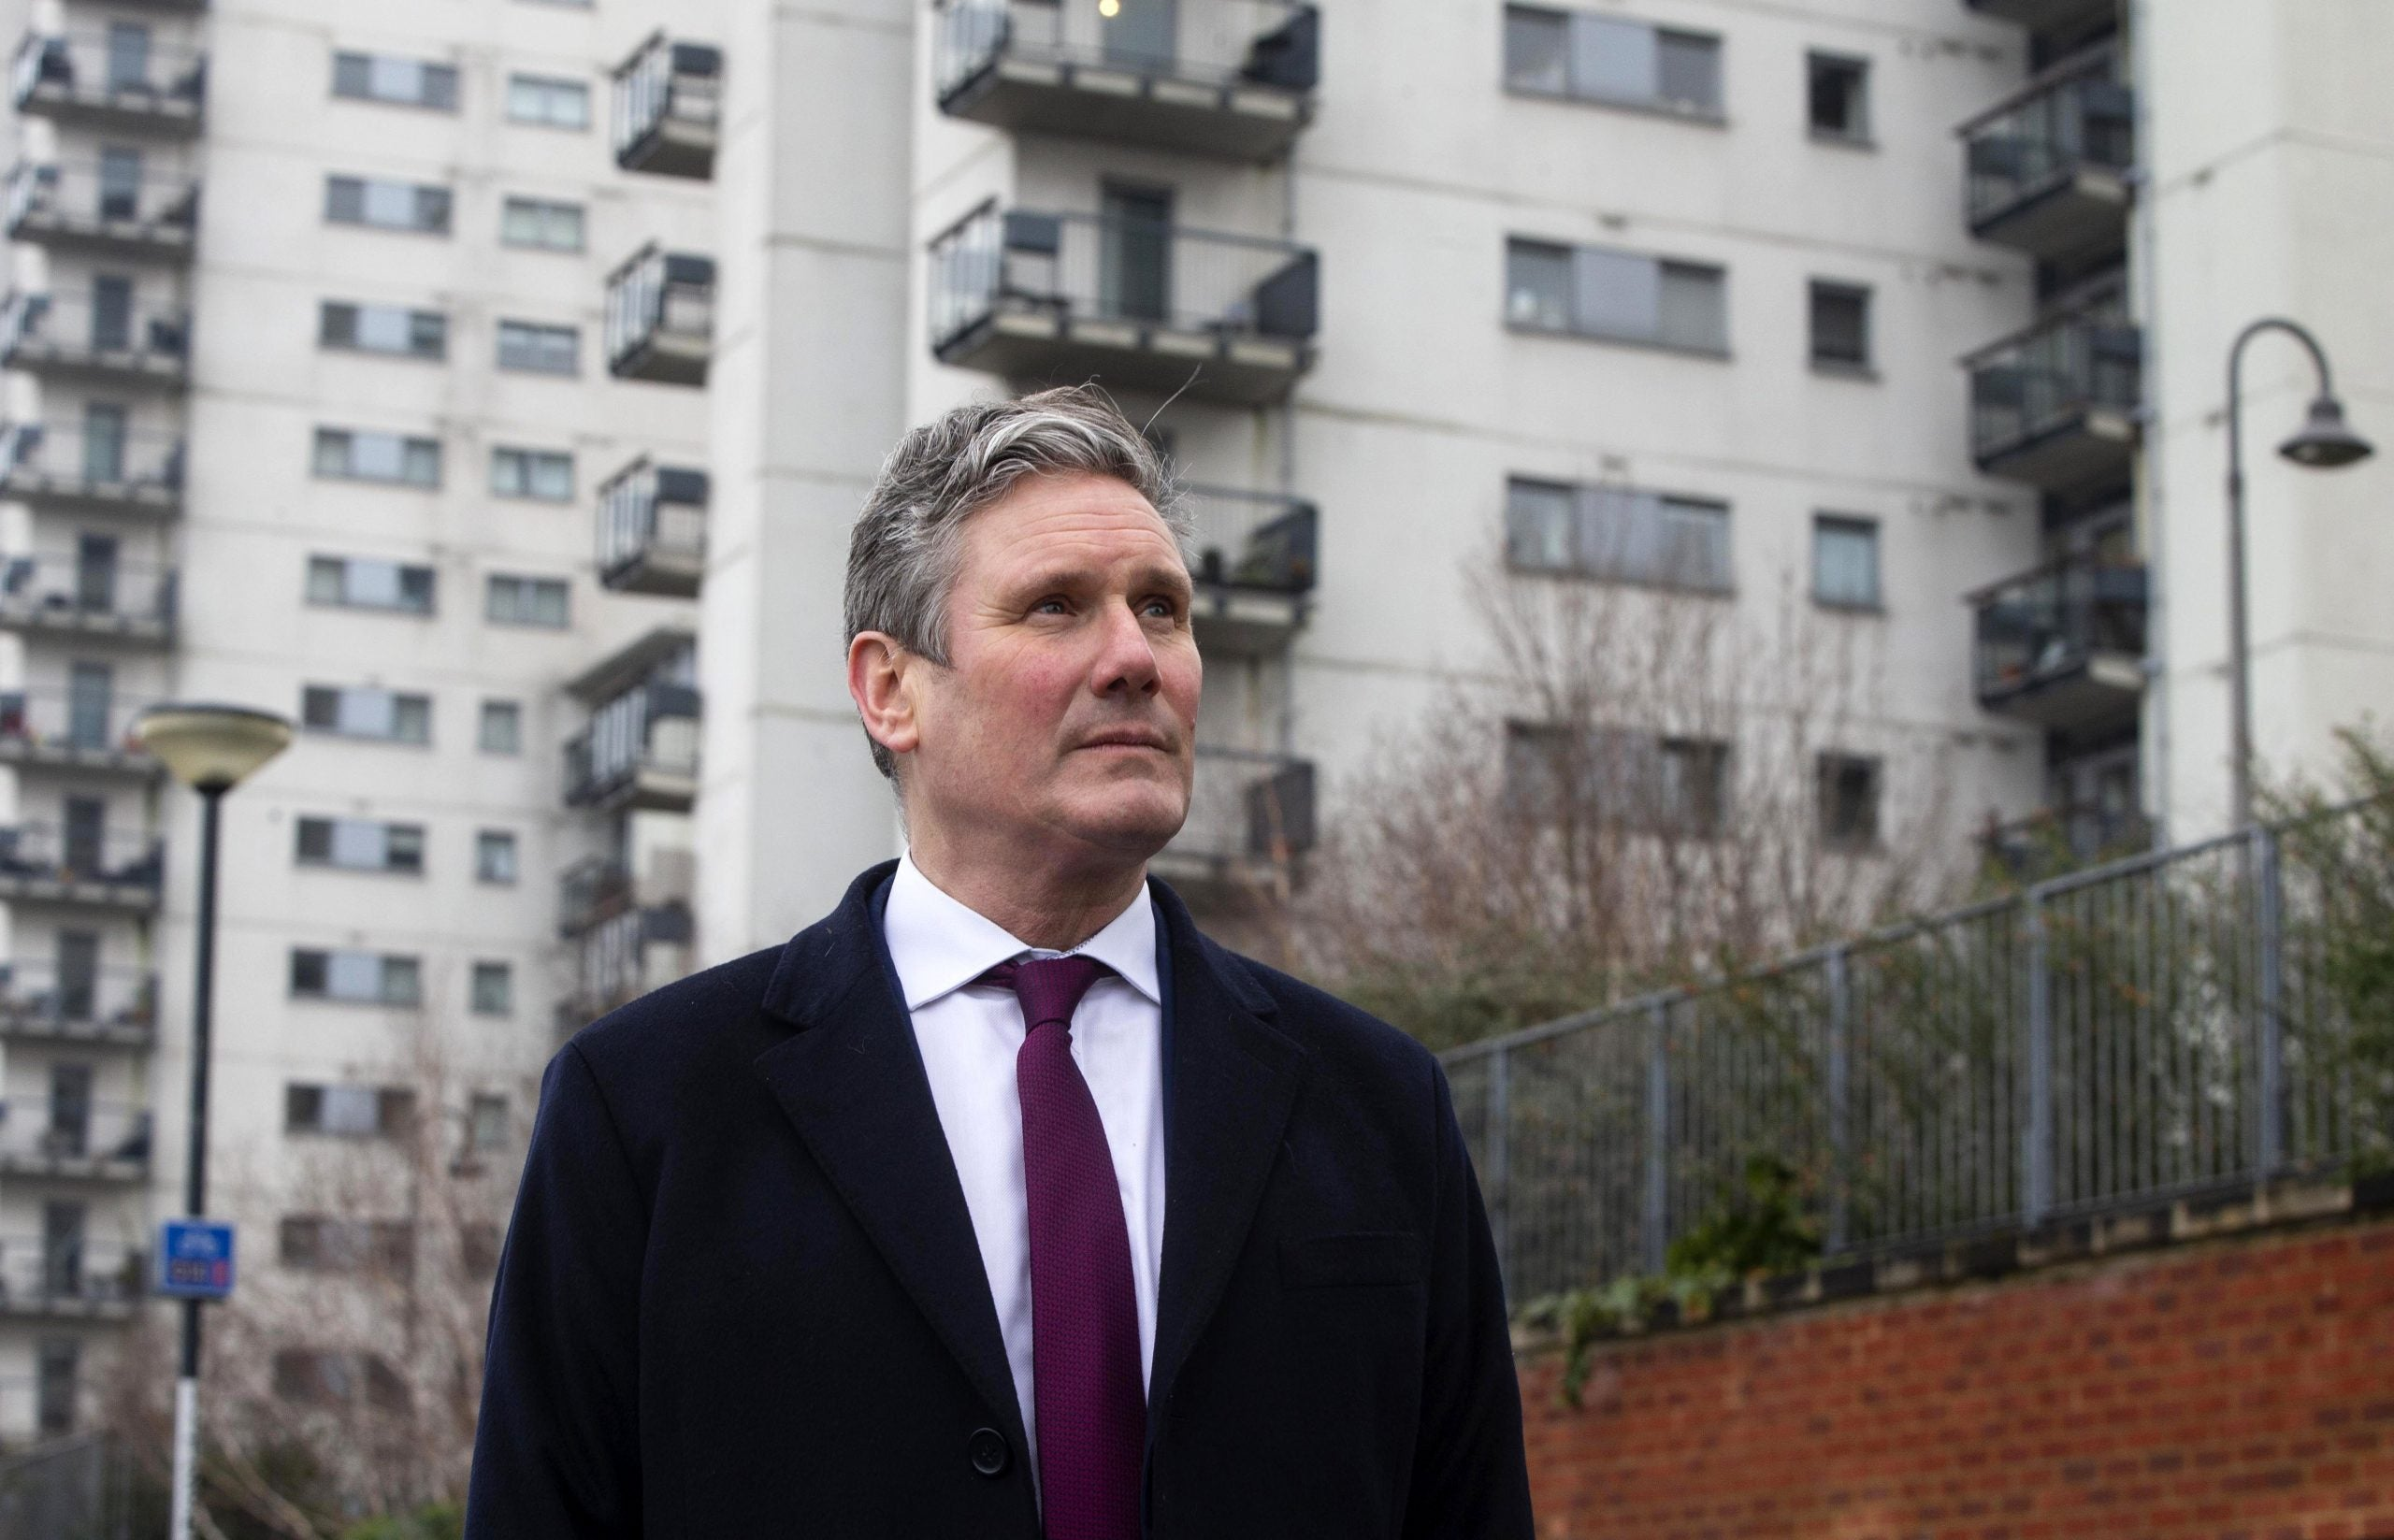 A consensus is forming among the commentariat that Keir Starmer is not up to the job. Does it matter?